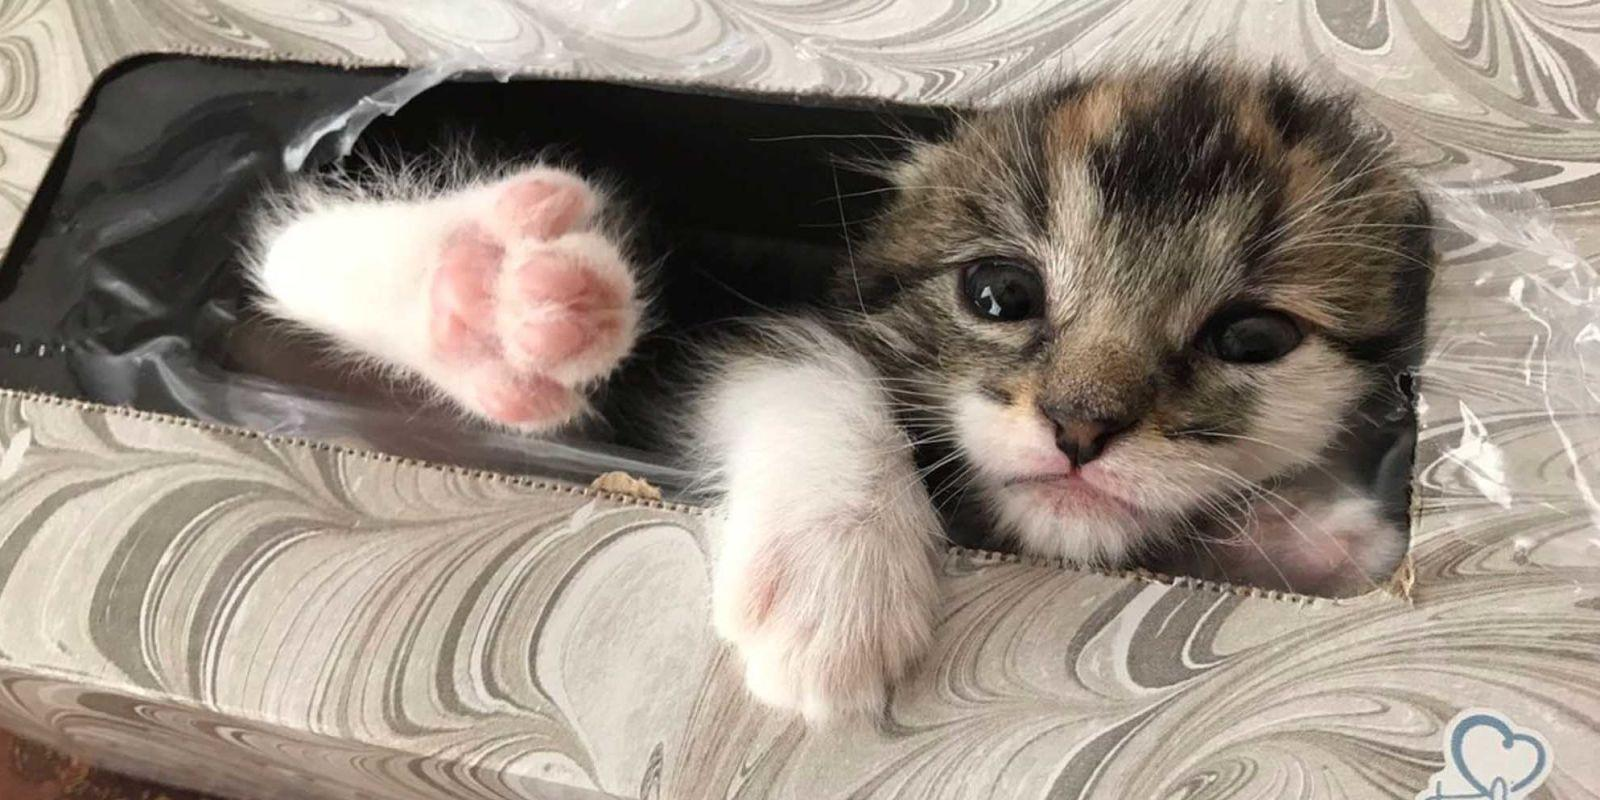 This Girl Found Her Lost Baby Kitten in the Most Adorable Hiding Spot